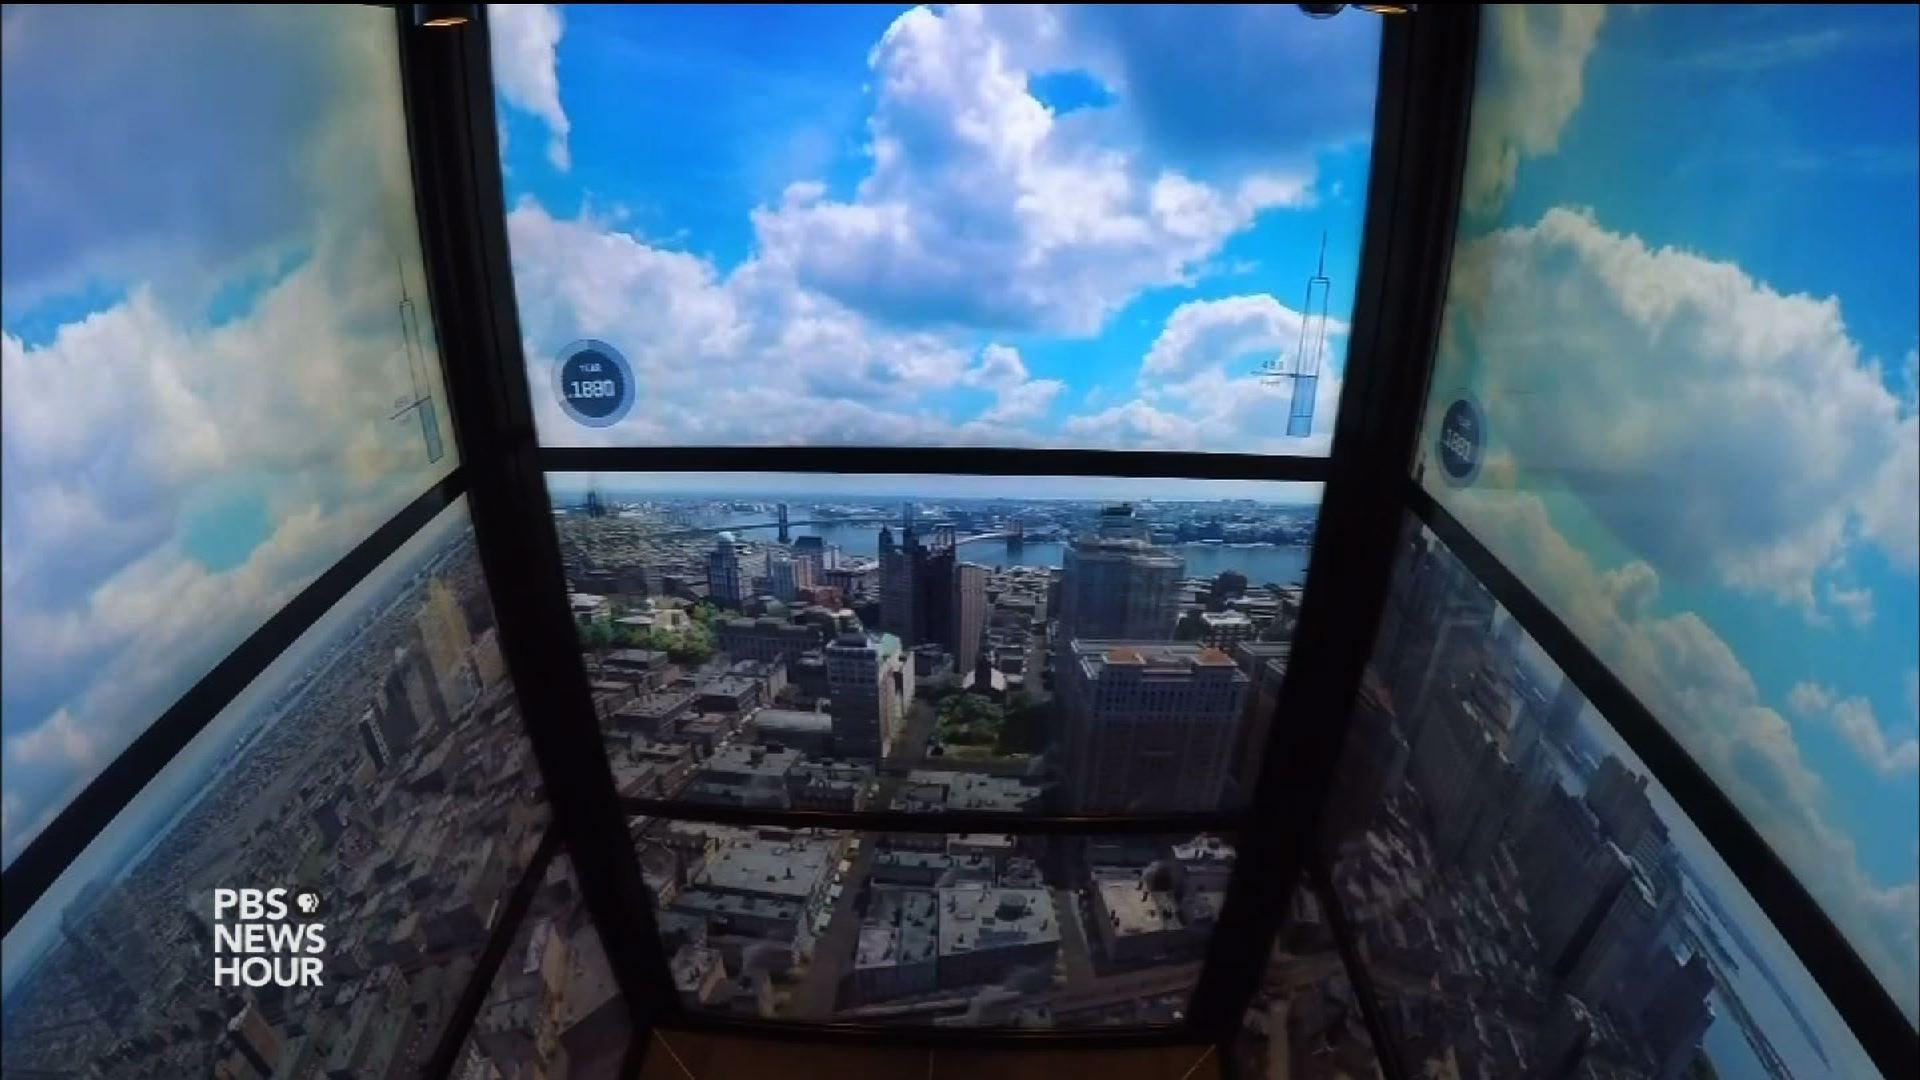 Pbs Newshour Take An Elevator Ride Back In Time Twin Cities Pbs